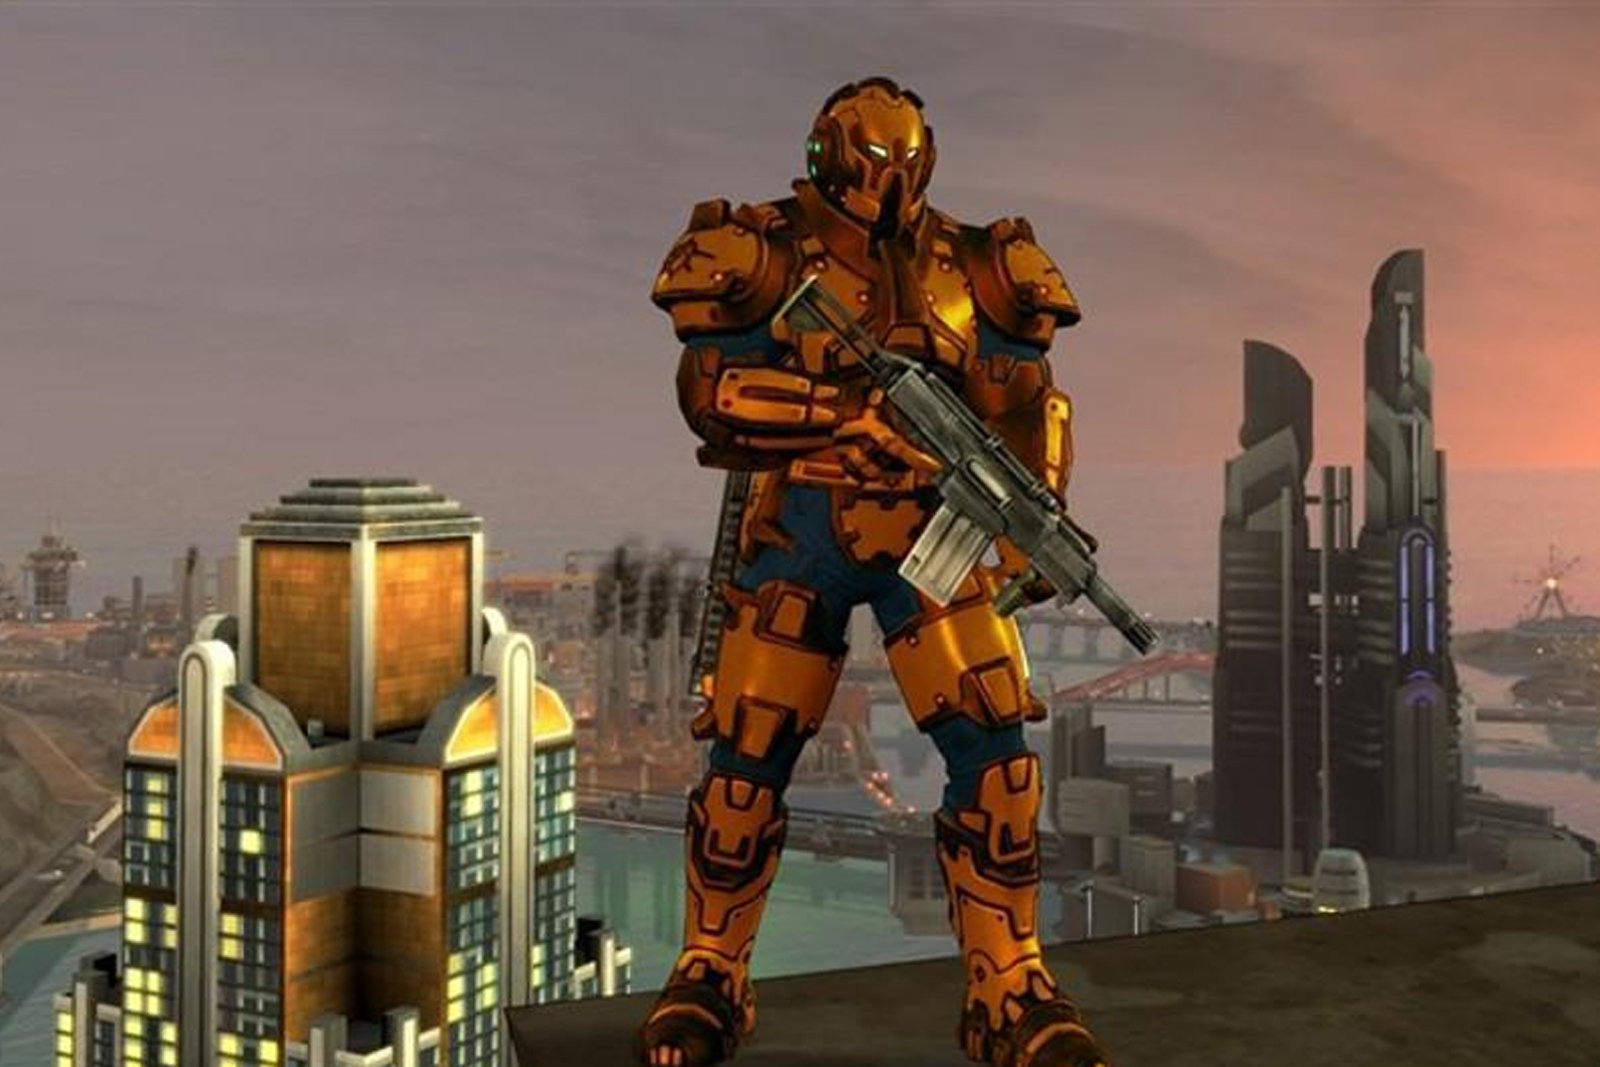 'Crackdown 2' is free on Xbox One ahead of updates to its sequel | DeviceDaily.com